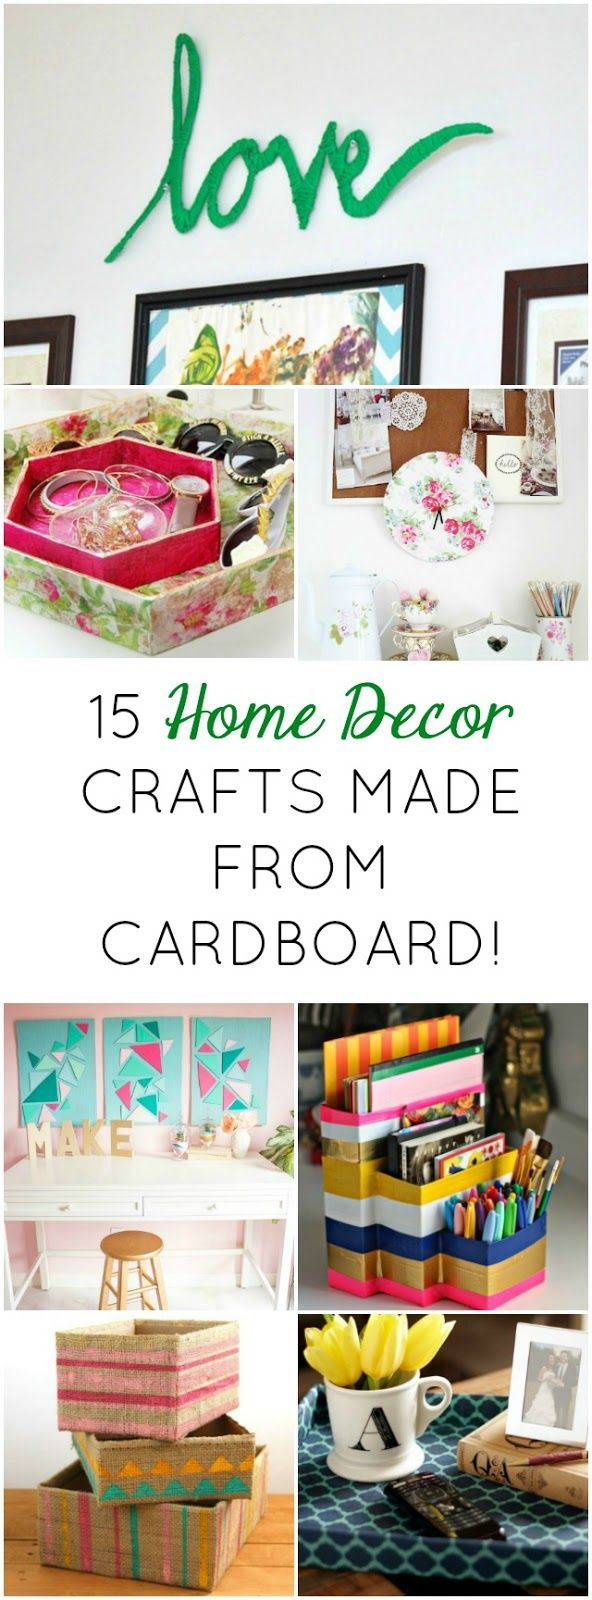 Love all these clever ideas for turning cardboard boxes into cool home decor!